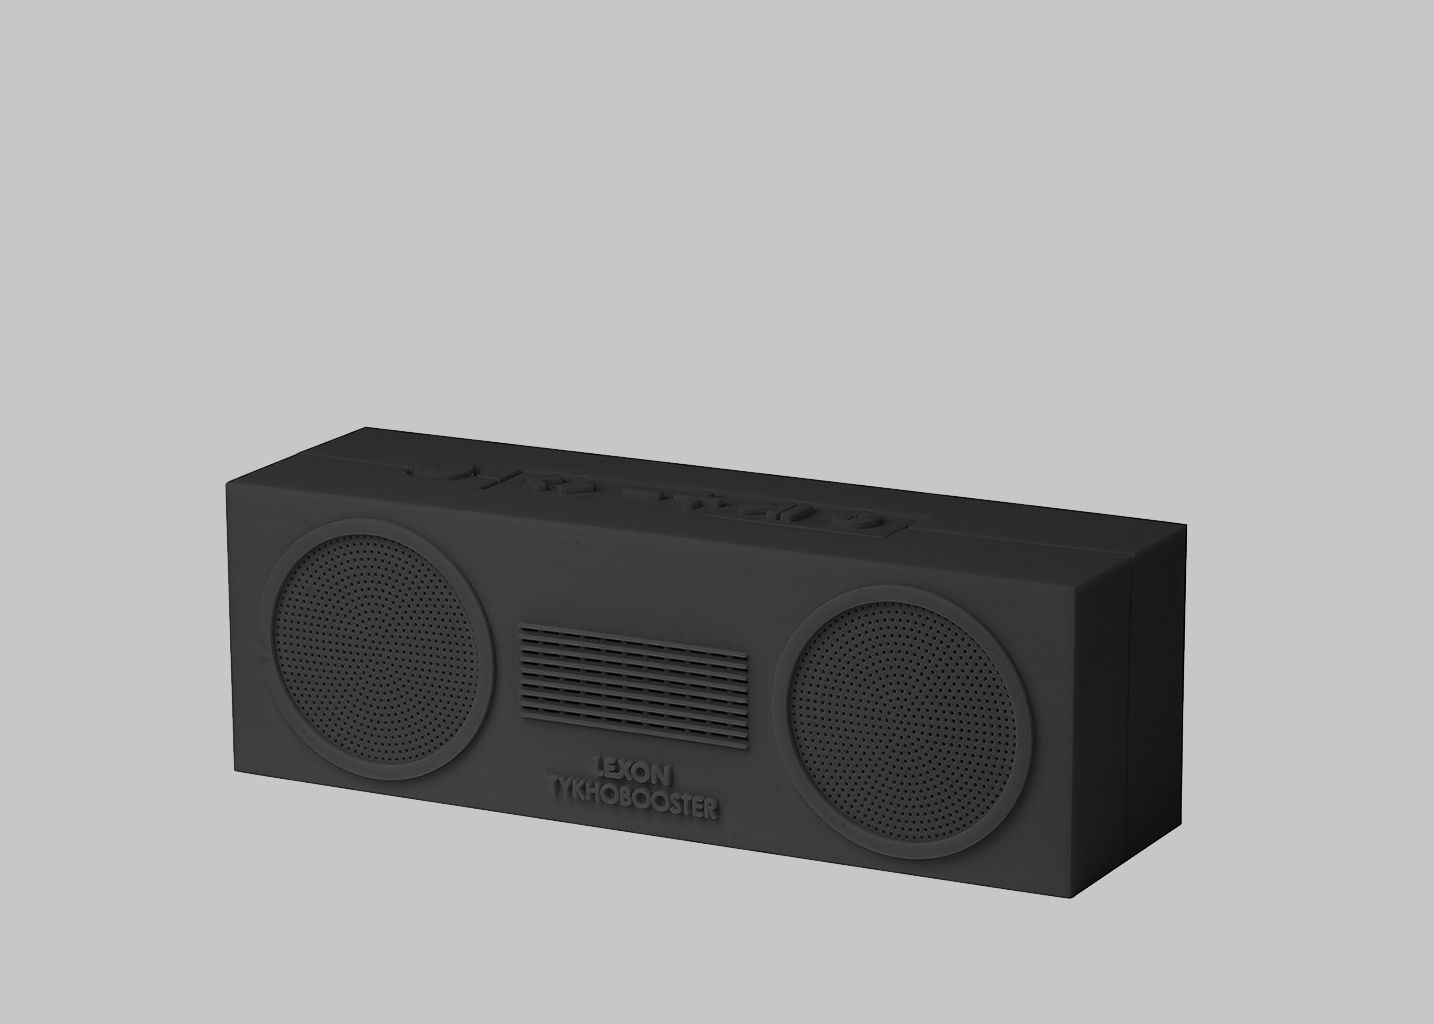 Enceinte Tykho Booster Anthracite Lexon Design L Exception